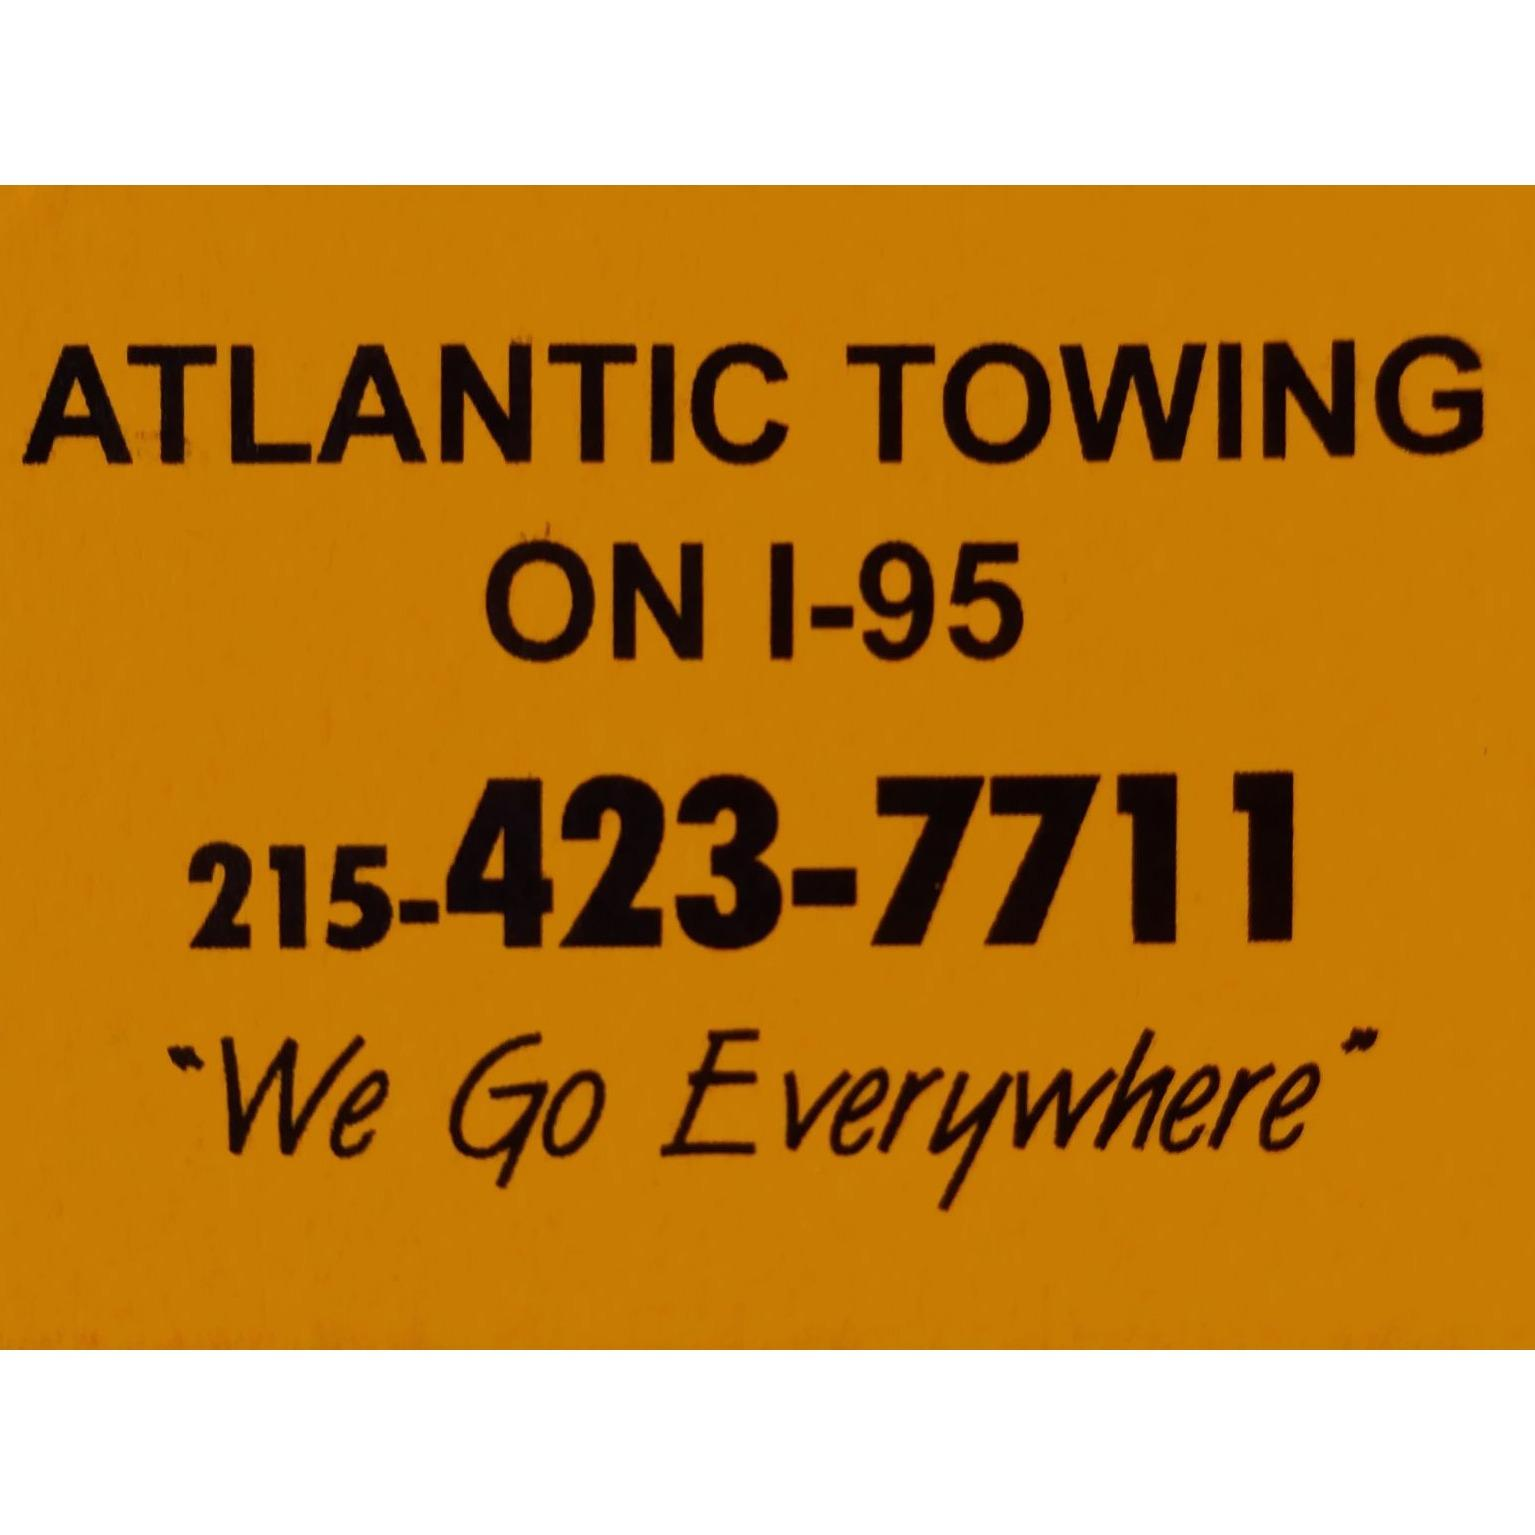 A-Atlantic Towing Inc